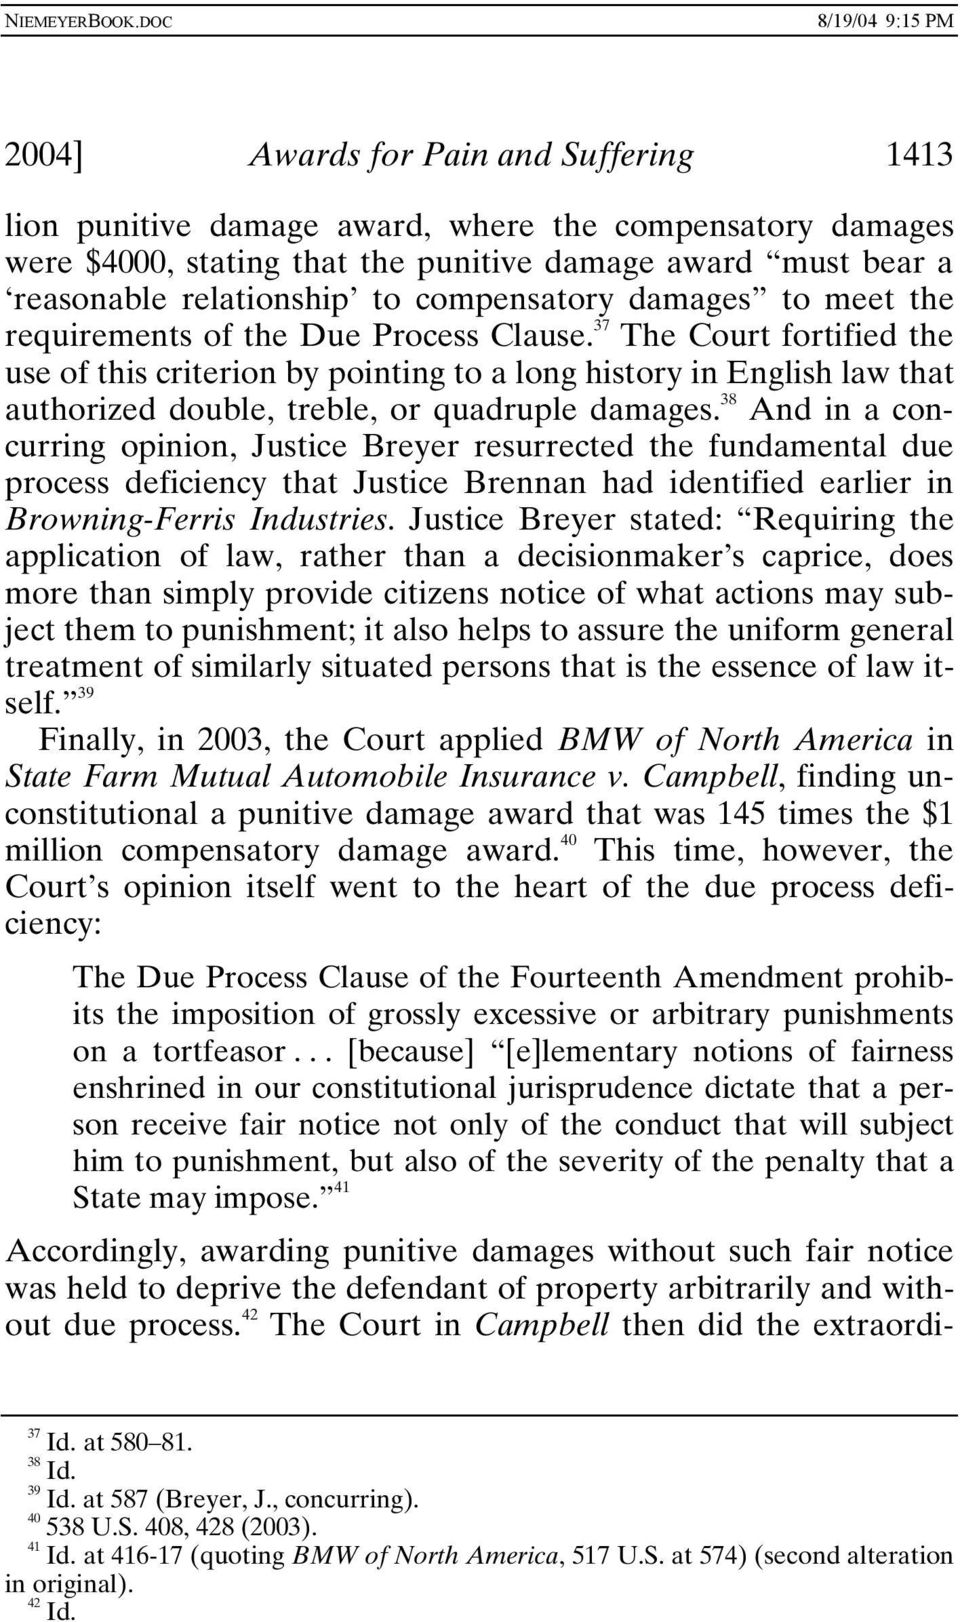 37 The Court fortified the use of this criterion by pointing to a long history in English law that authorized double, treble, or quadruple damages.